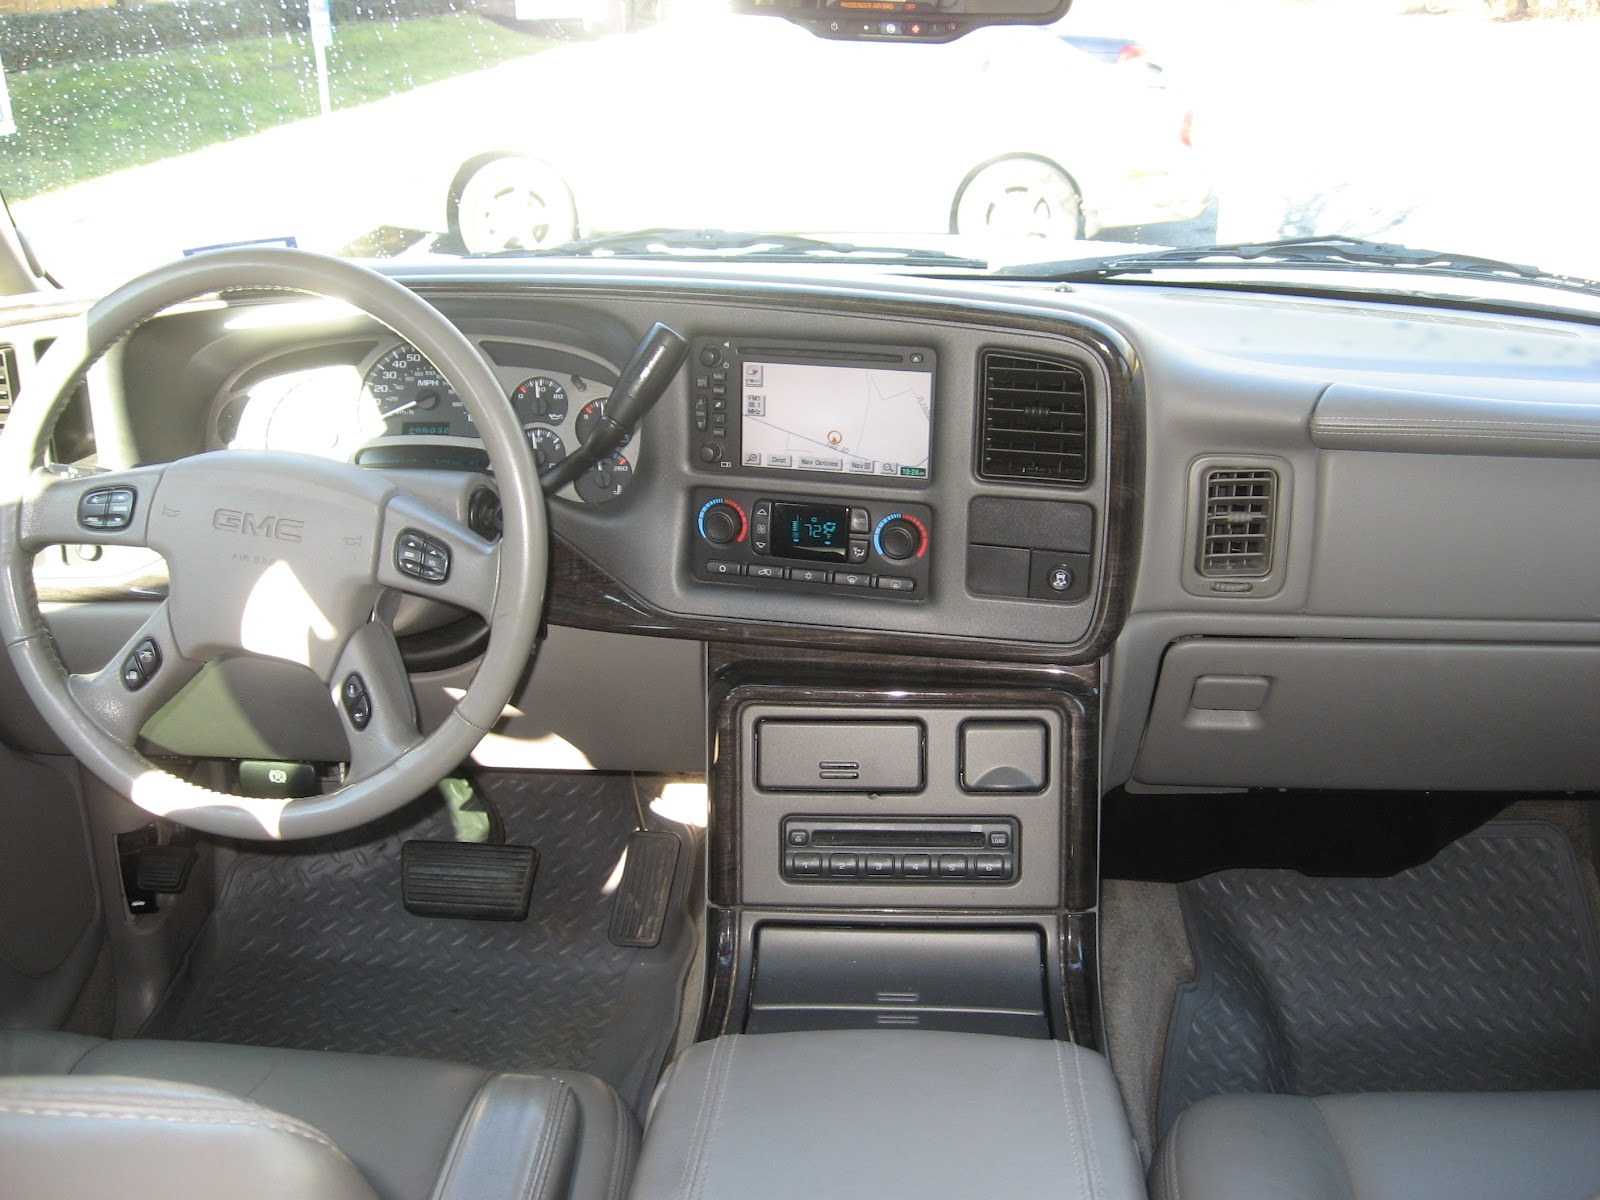 2005 gmc yukon xl denali interior. Black Bedroom Furniture Sets. Home Design Ideas